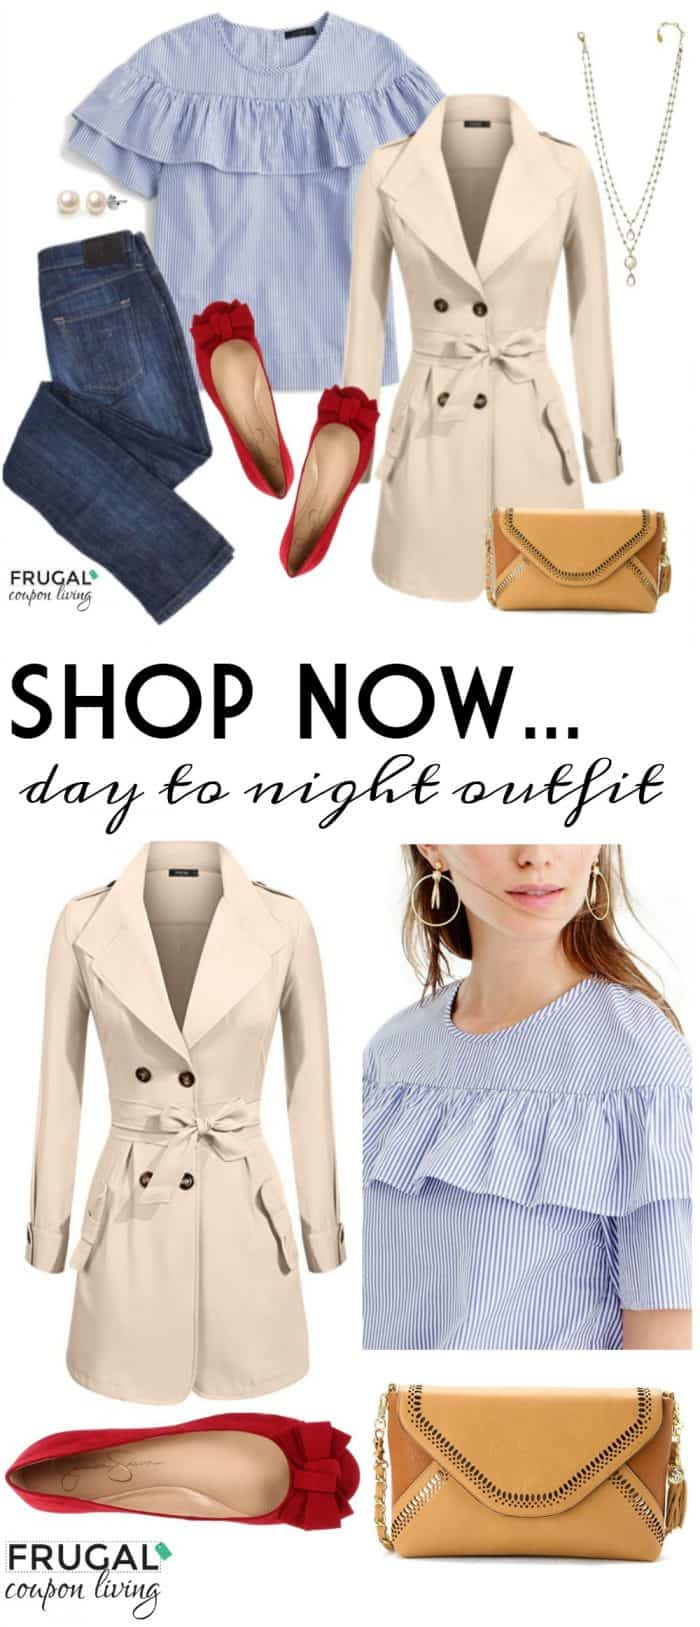 day-to-date-outfit-frugal-coupon-living-frugal-fashion-friday-long